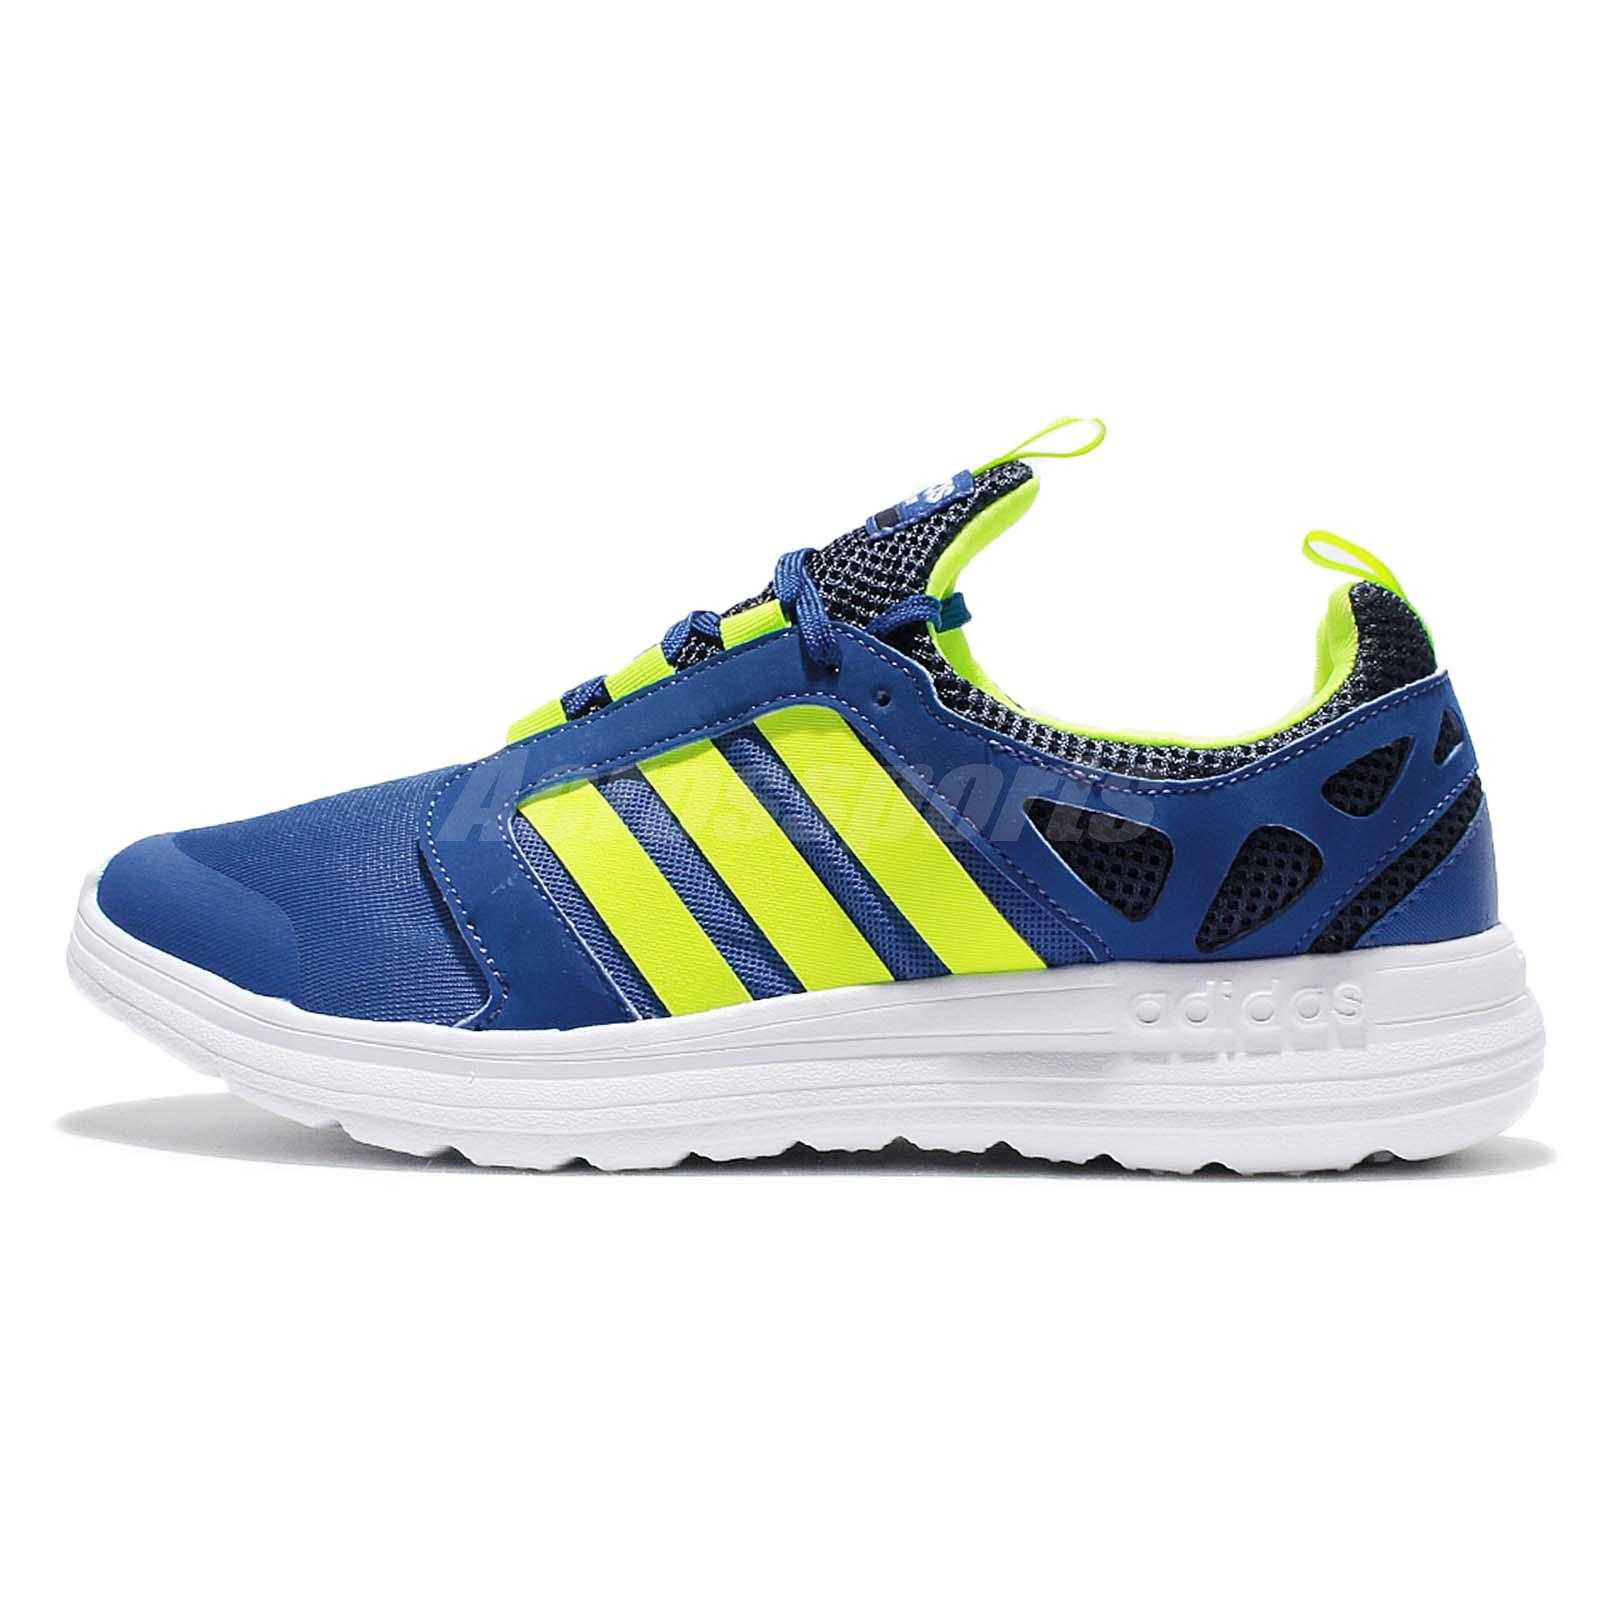 adidas neo label cloudfoam sprint blue volt mens running. Black Bedroom Furniture Sets. Home Design Ideas